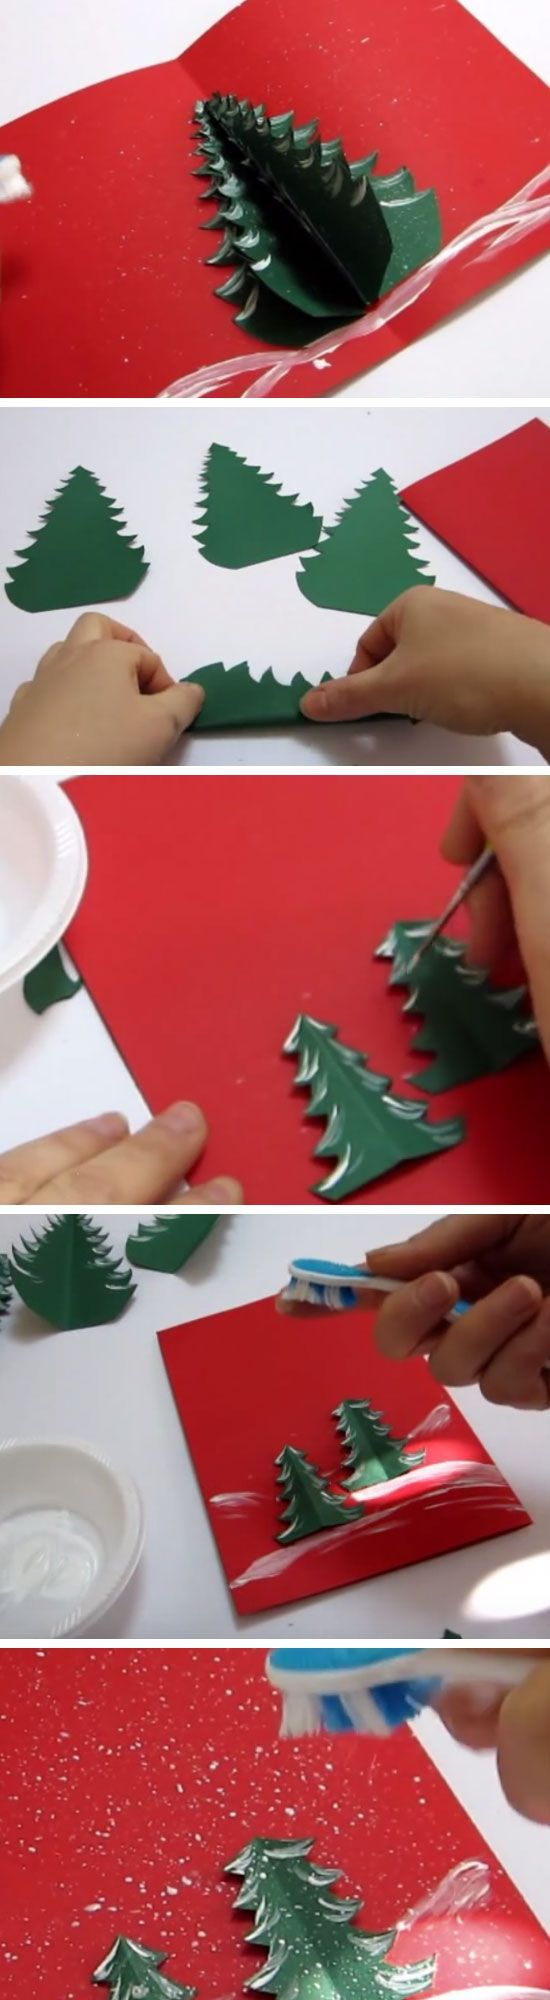 Christmas tree pop up card handmade pop up christmas cards for